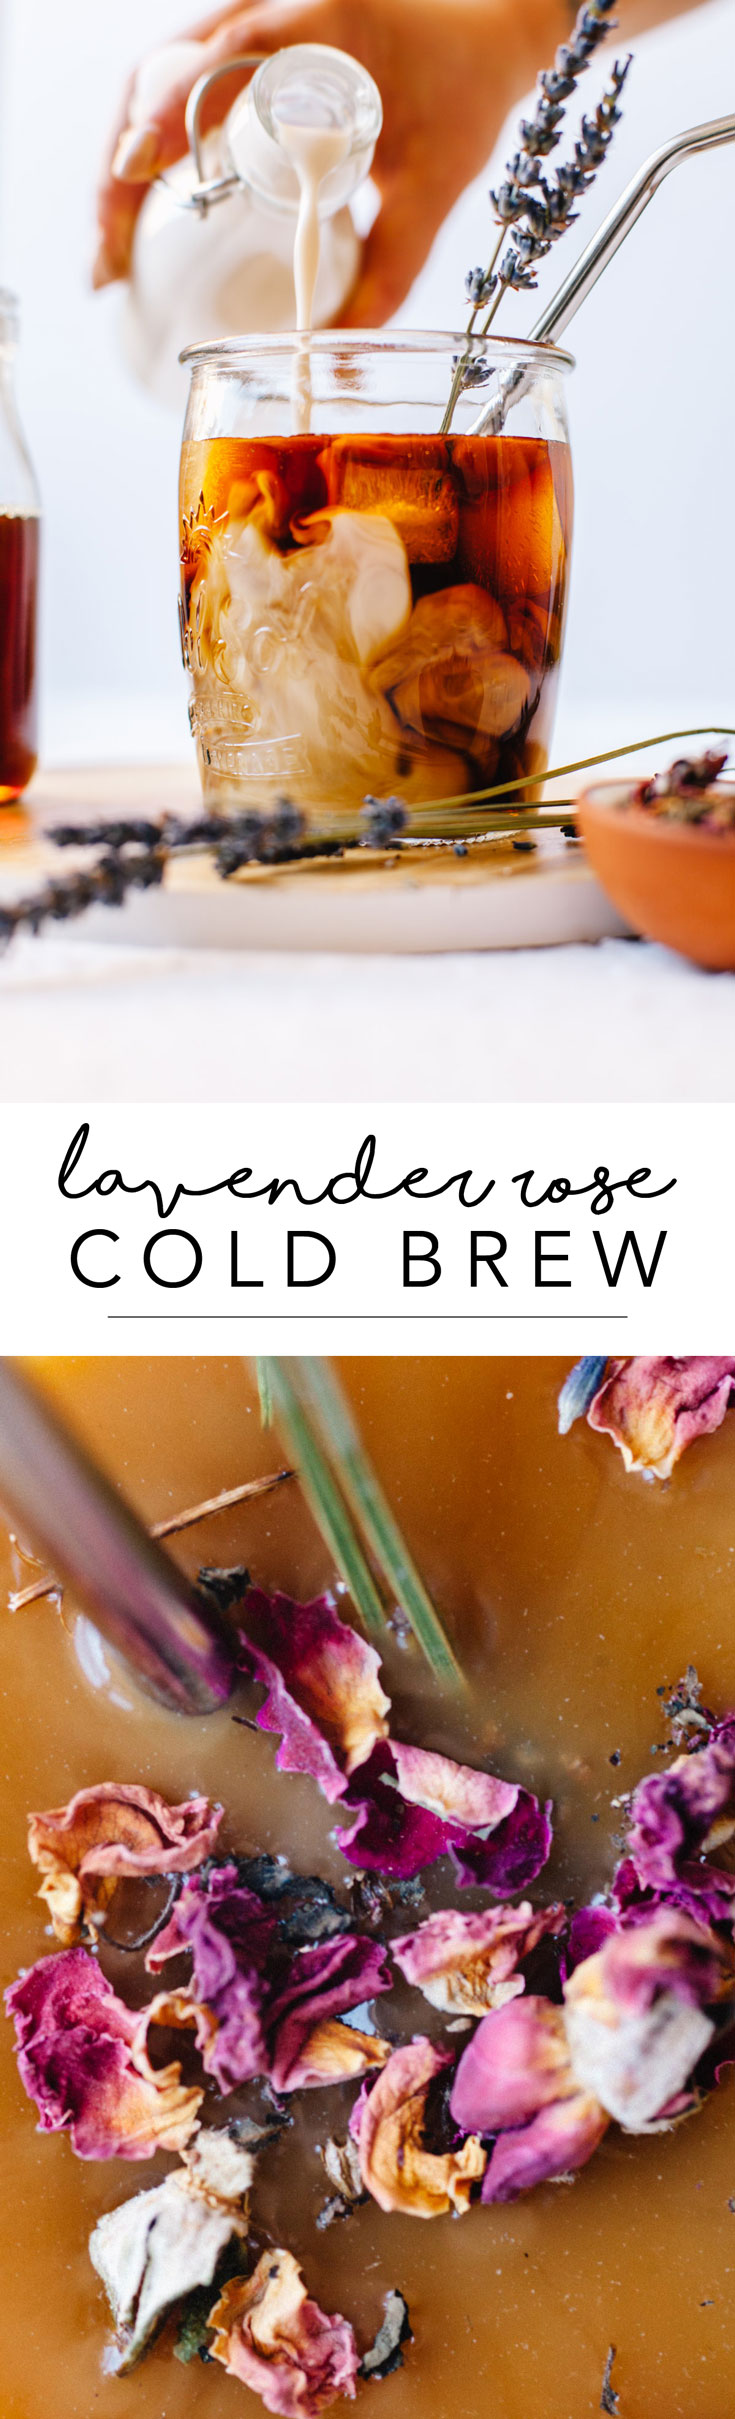 Make this Easy Lavender Rose Cold Brew coffee at home in no time! All you need is dried lavender, rose water, Dunkin Donuts Cold Brew packets and water. It's the perfect drink of spring! #coffee #rose #lavender #coldbrew | Brewing Happiness